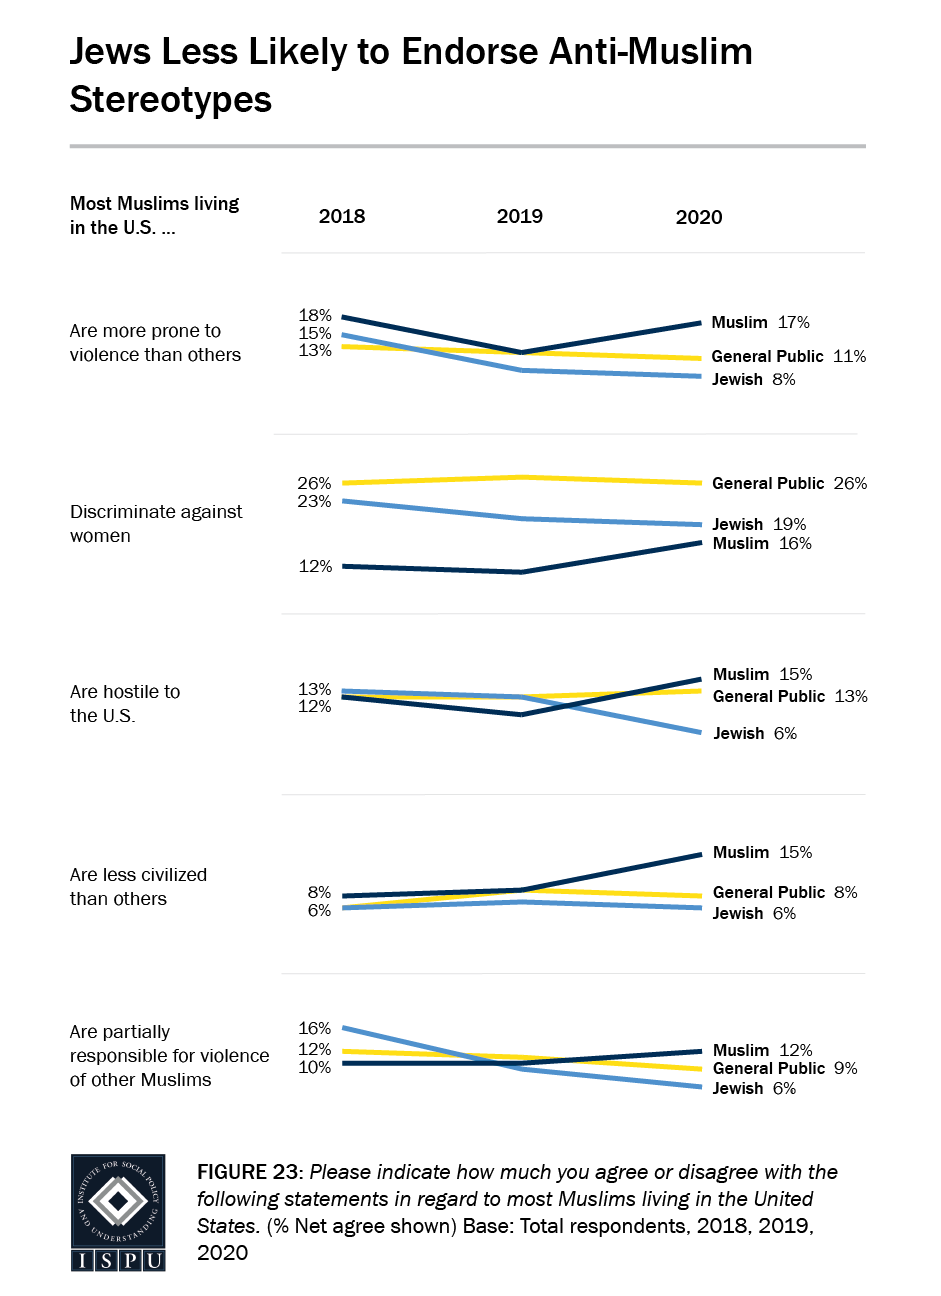 Figure 23: A series of line graphs showing that Jews are less likely to endorse five common anti-Muslim stereotypes